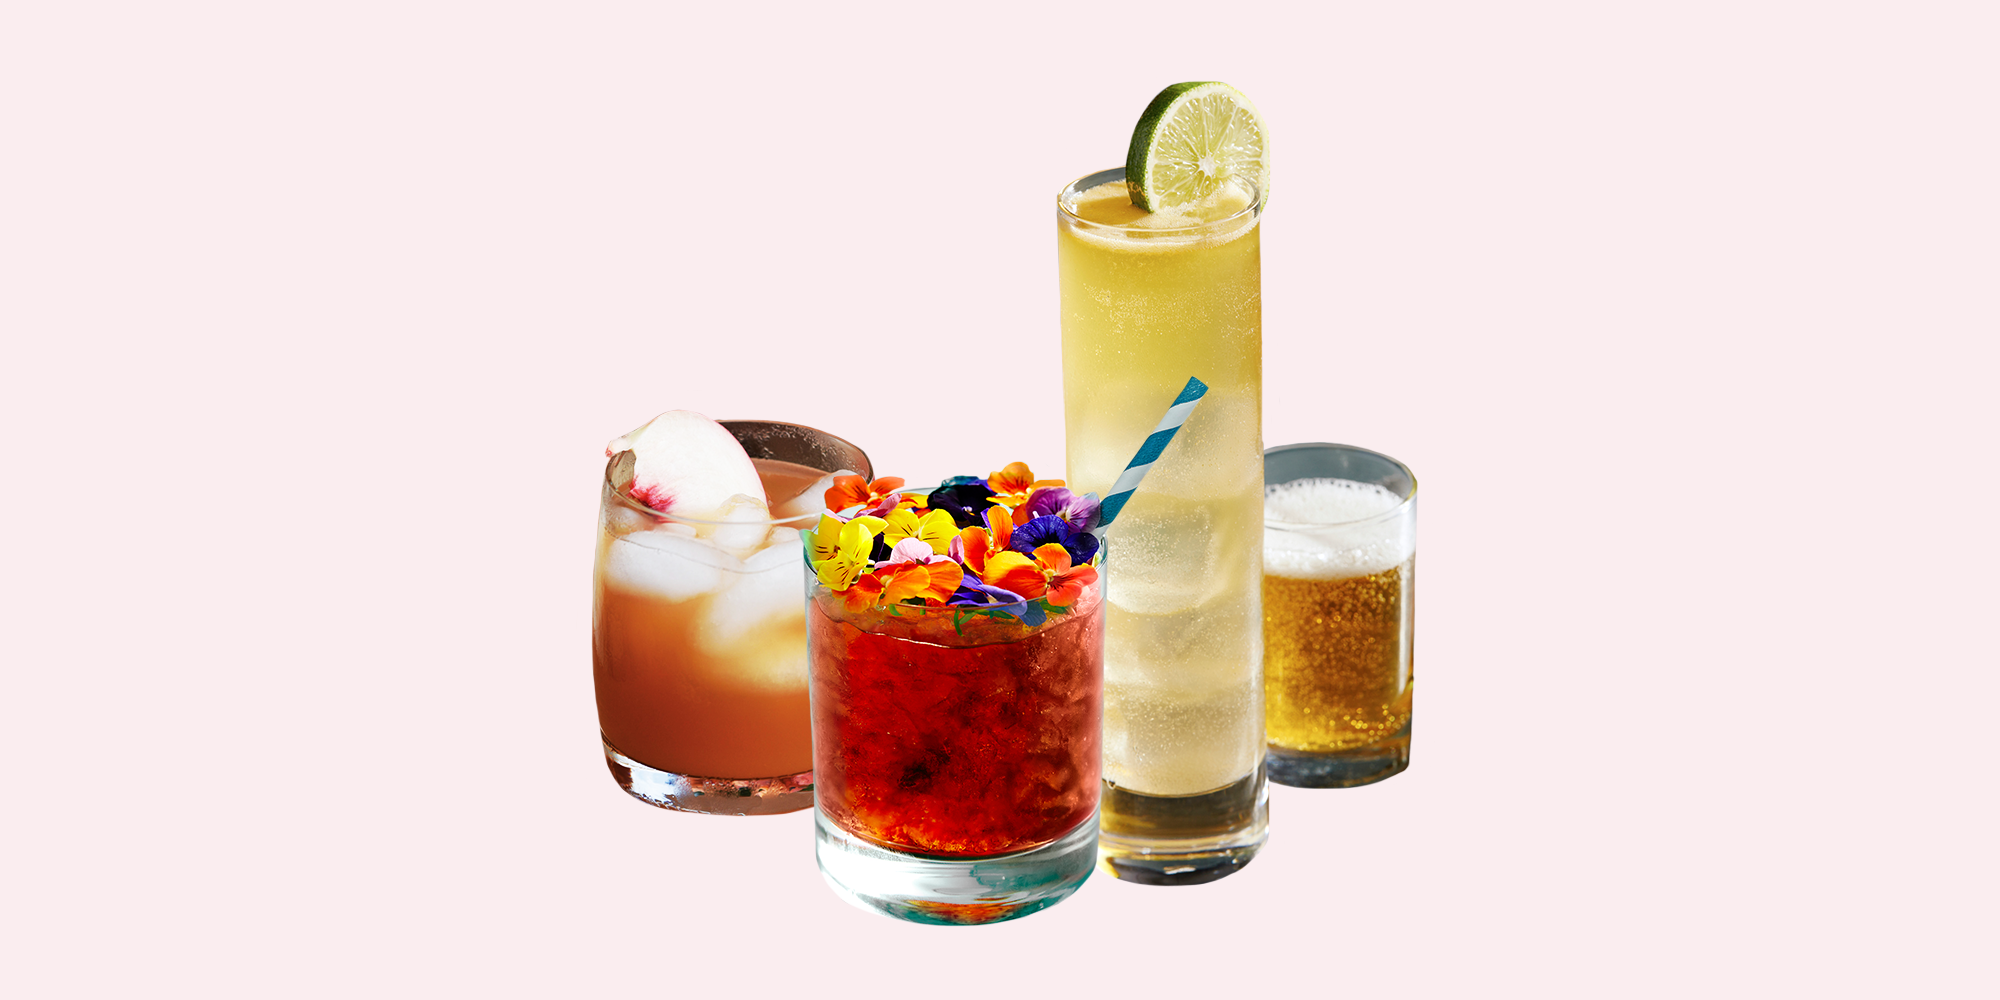 Kentucky Derby Cocktail Recipes   Refreshing Derby Day Cocktails